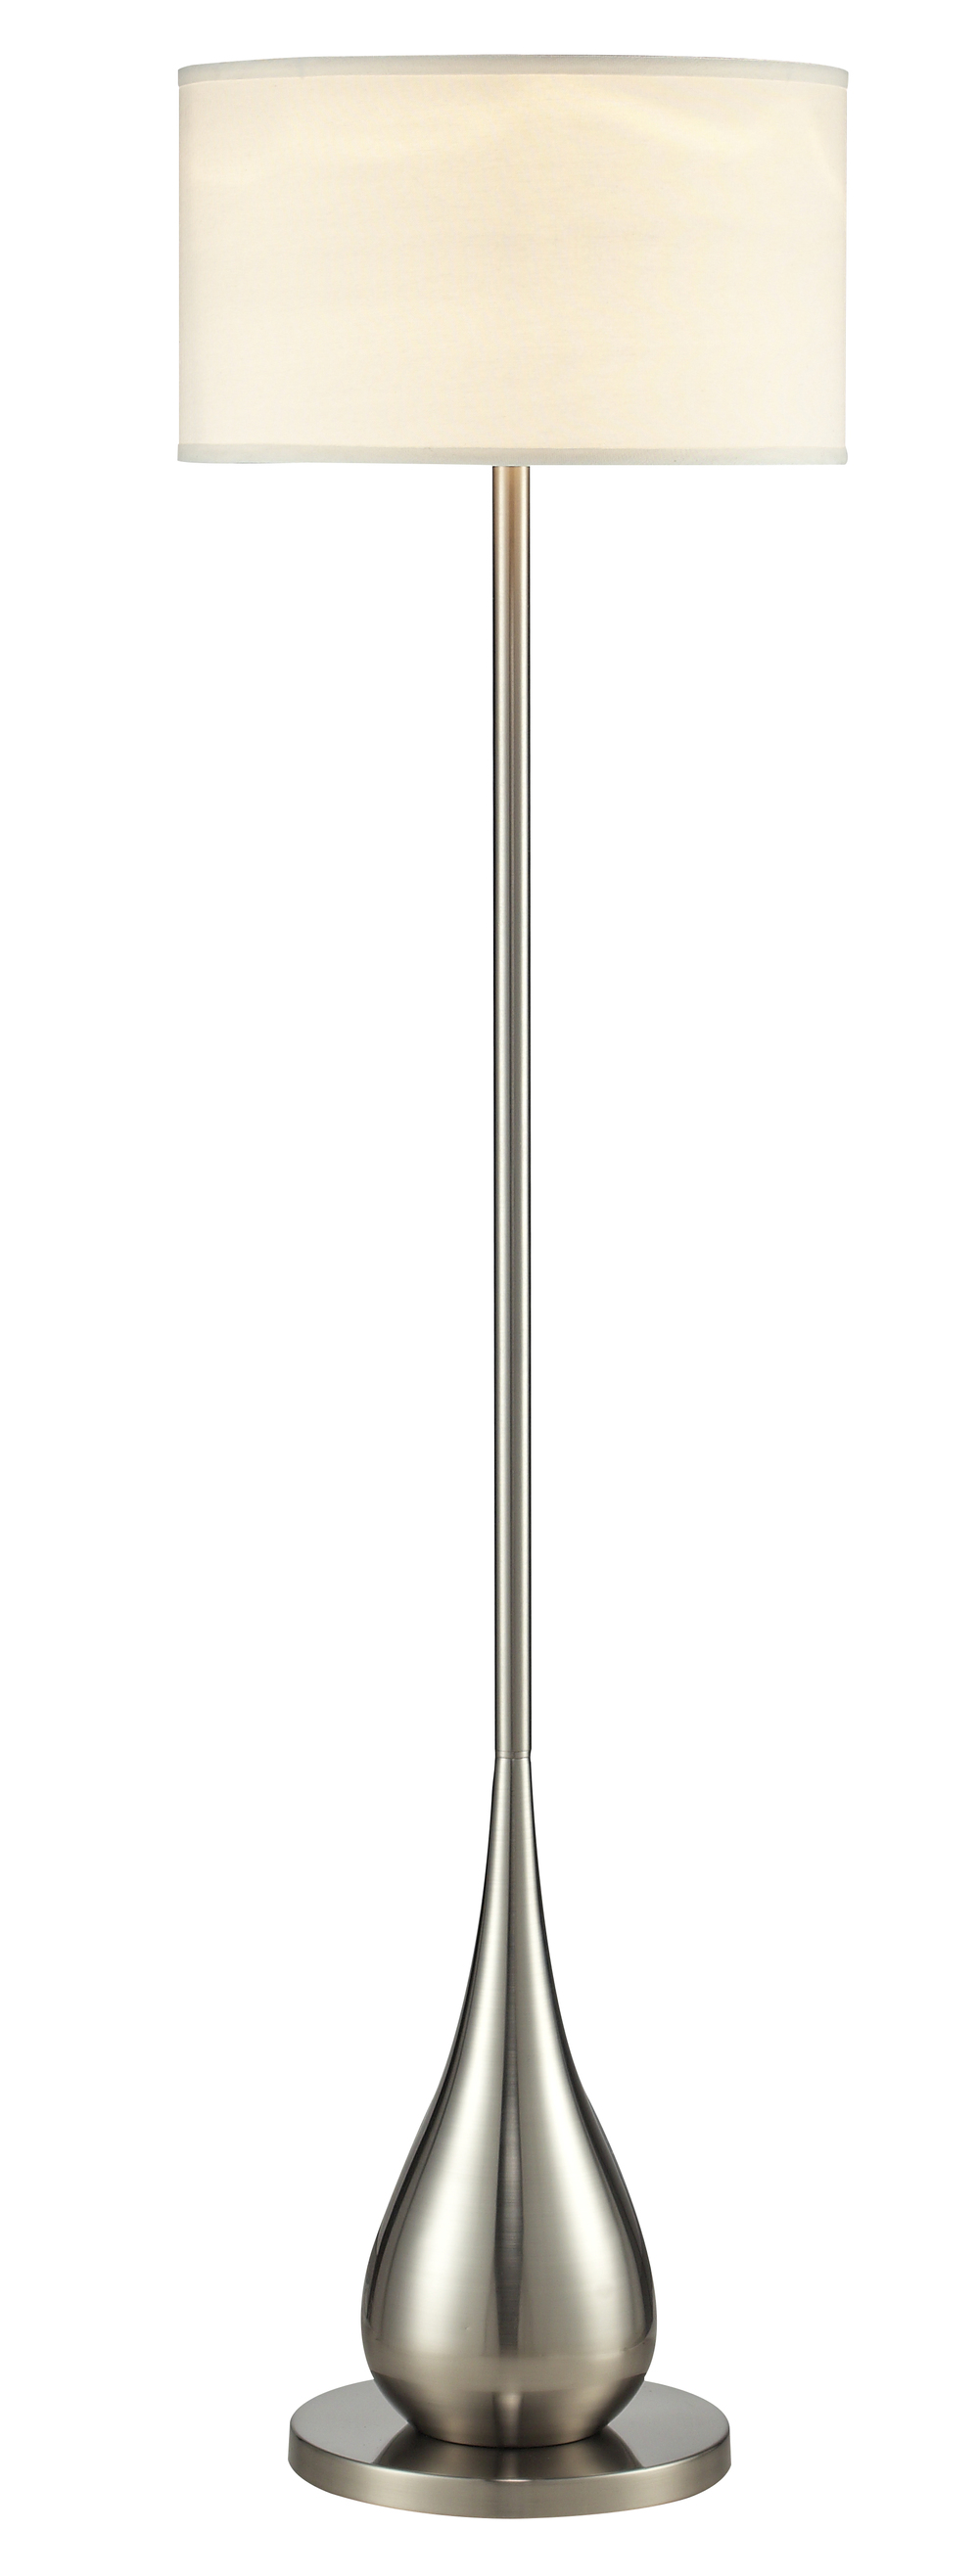 20009 | TEAR DROP FLOOR LAMP